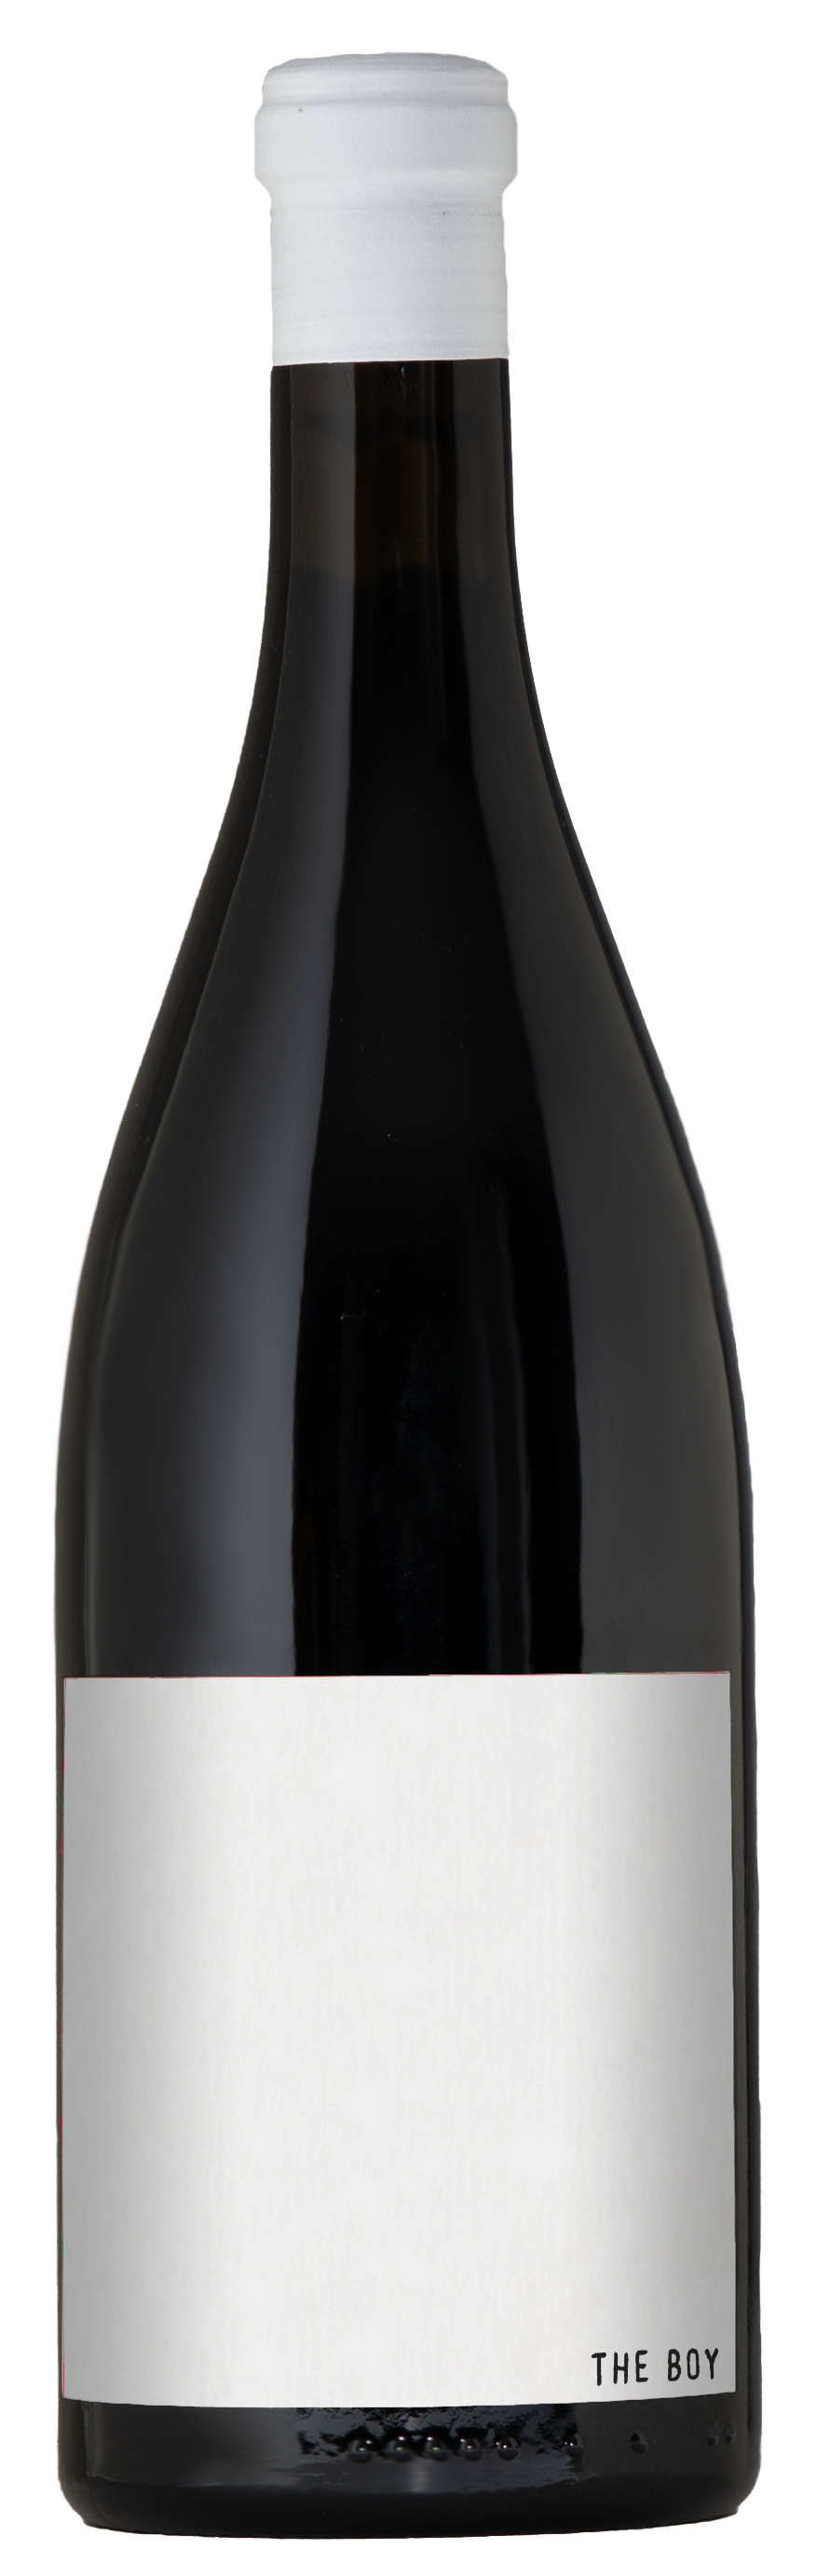 A dark bottle of wine with the simple white The Boy Syrah label and white capsule on top.